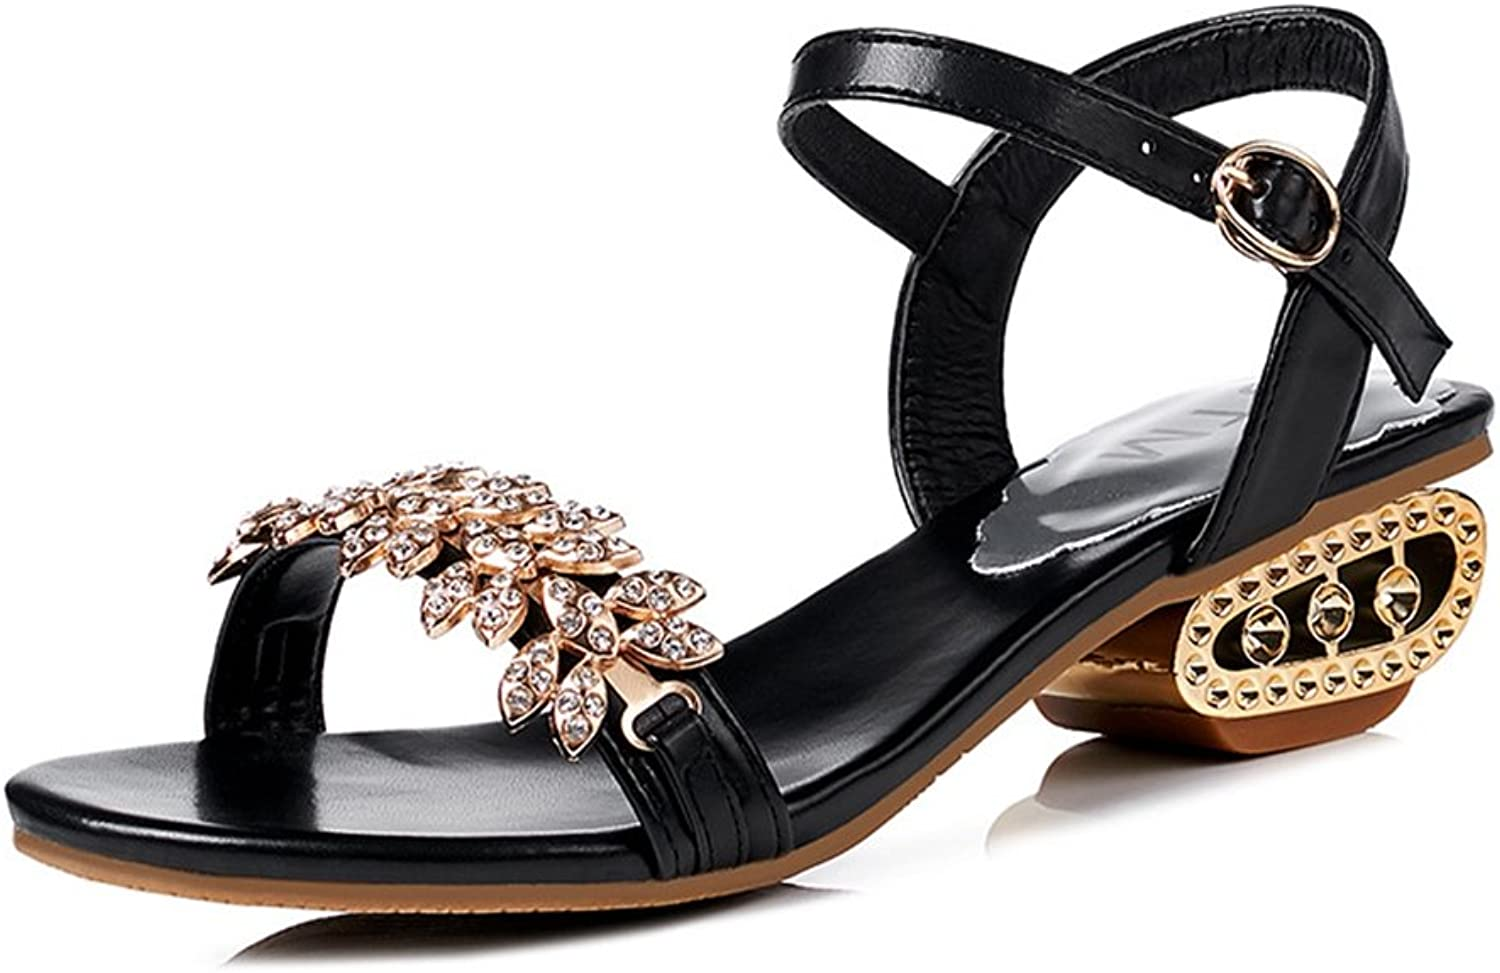 Zarbrina Womens Wedge Low Heels Sandals Charm Rhinestone Summer Open Toe Ankle Strap Roman shoes